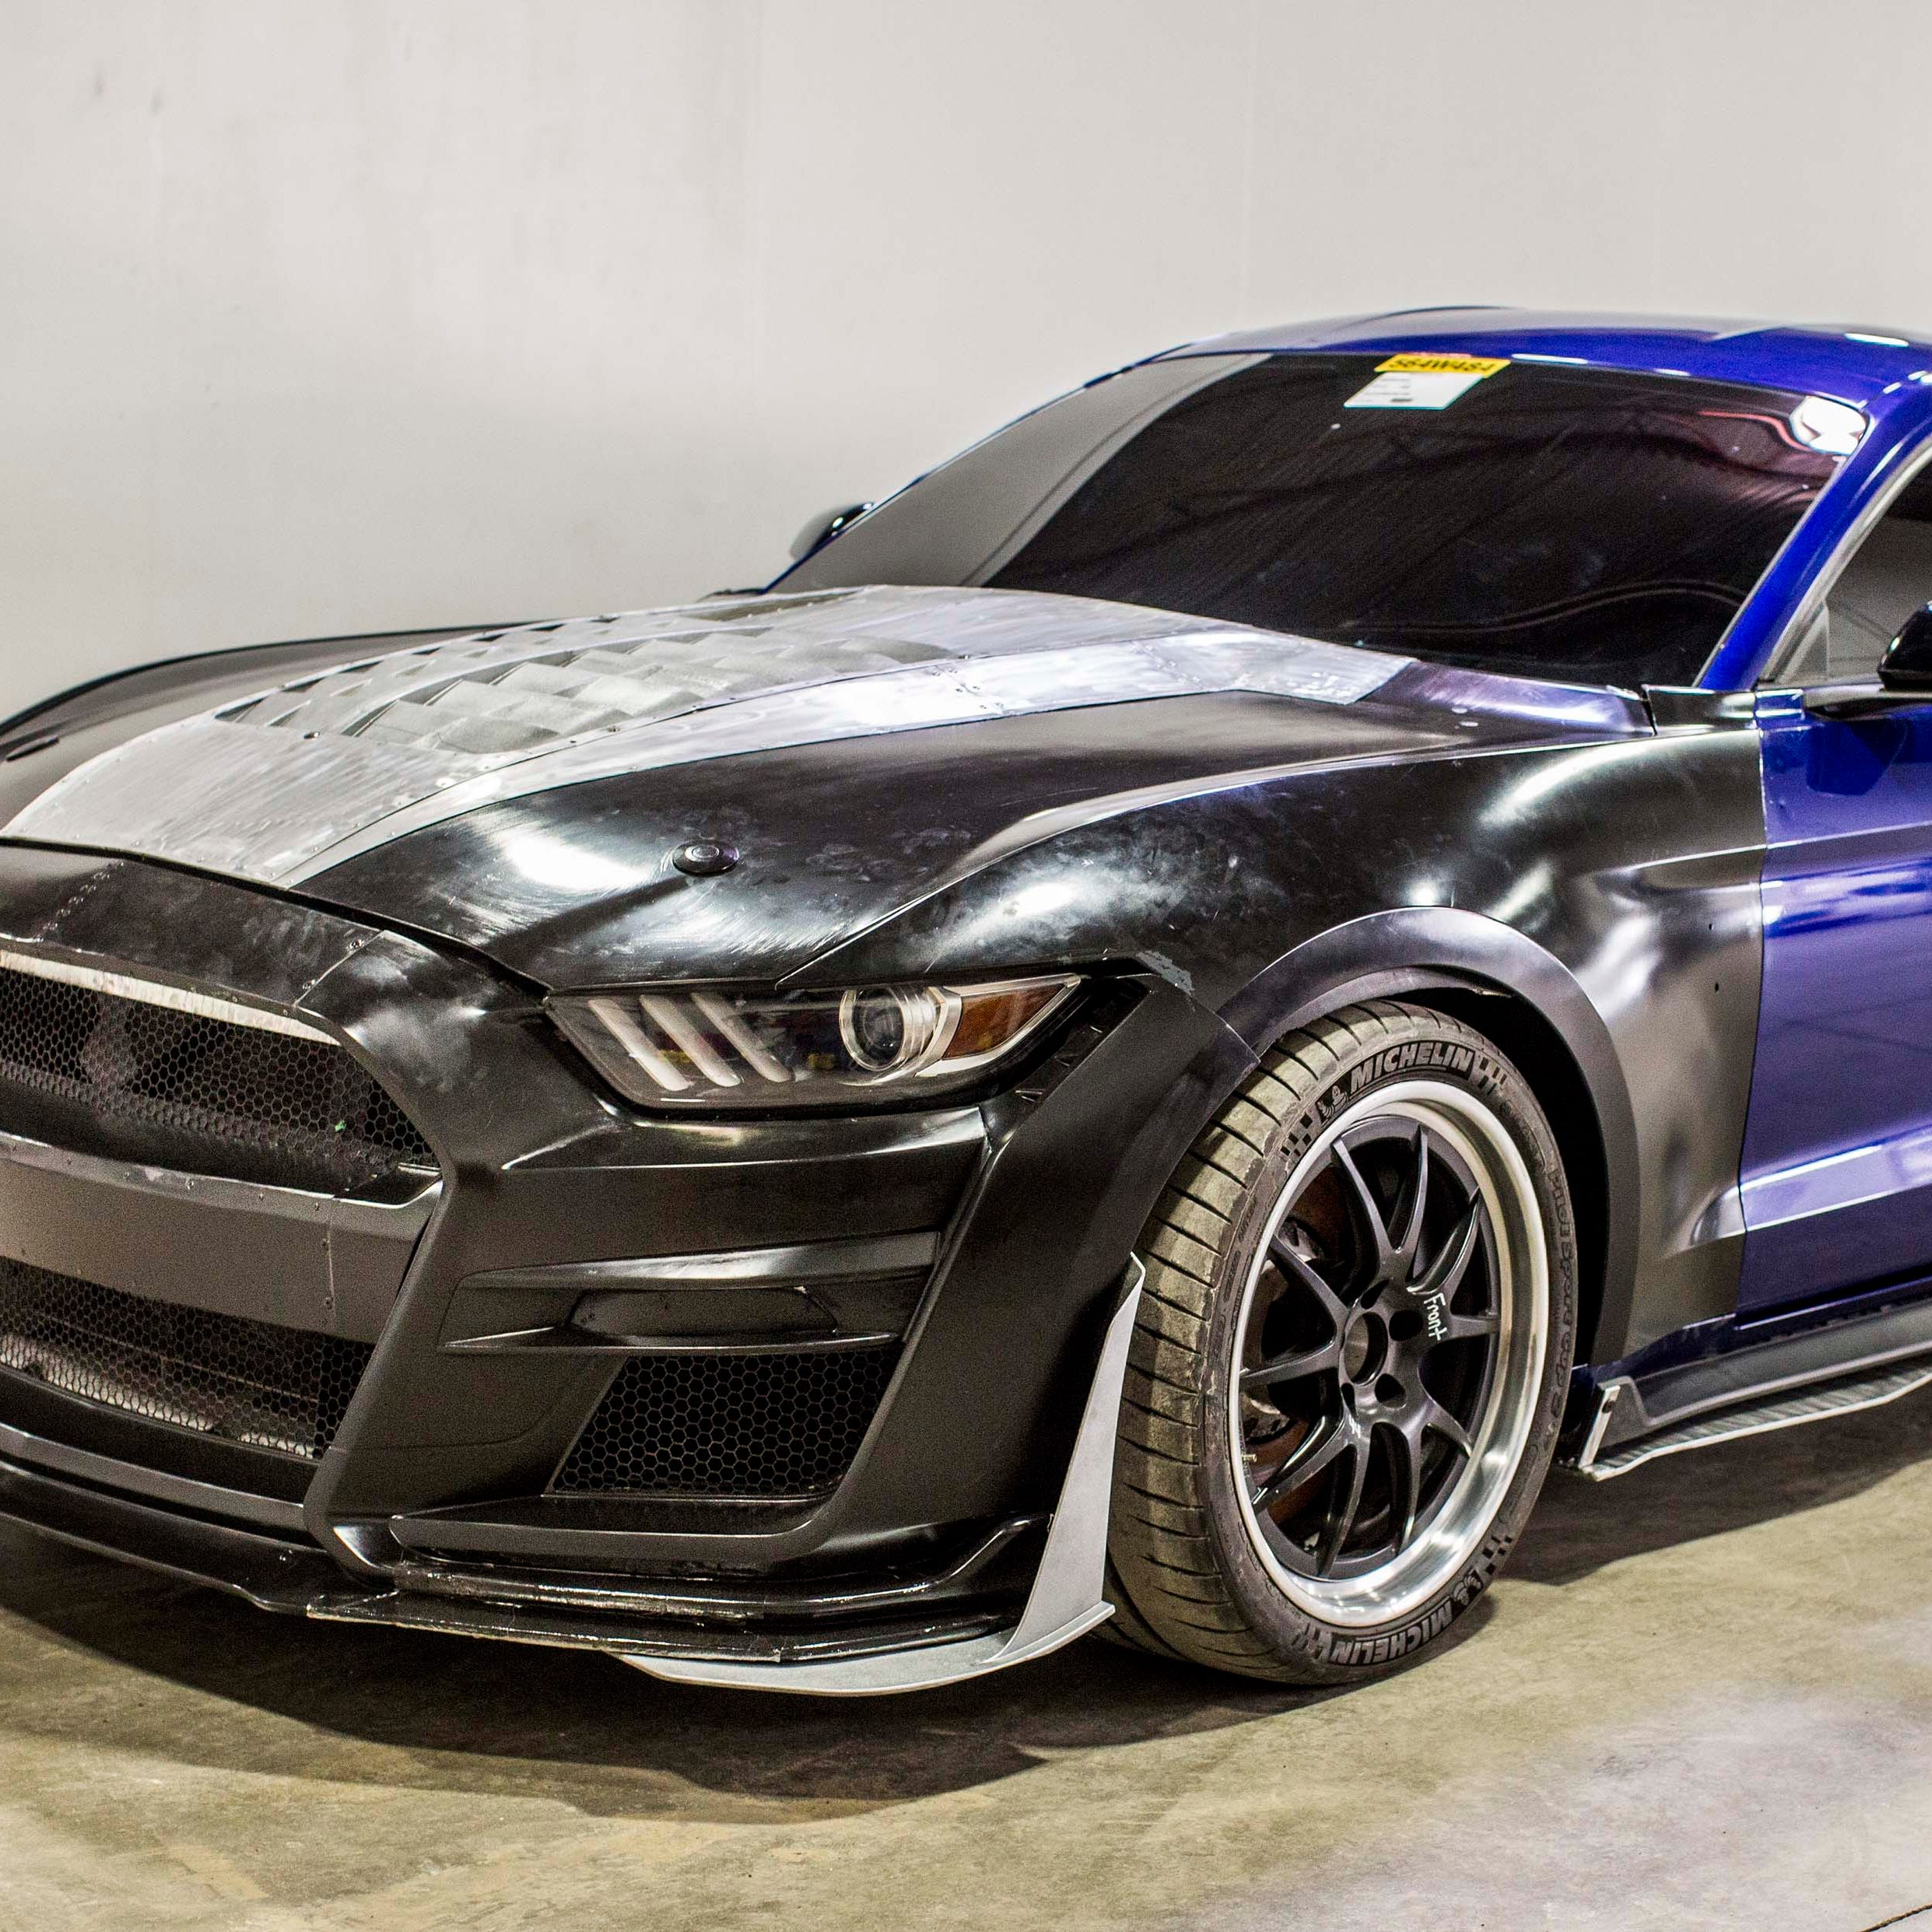 Mustang state-of-the-art: 'Not your grandpa's GT500'